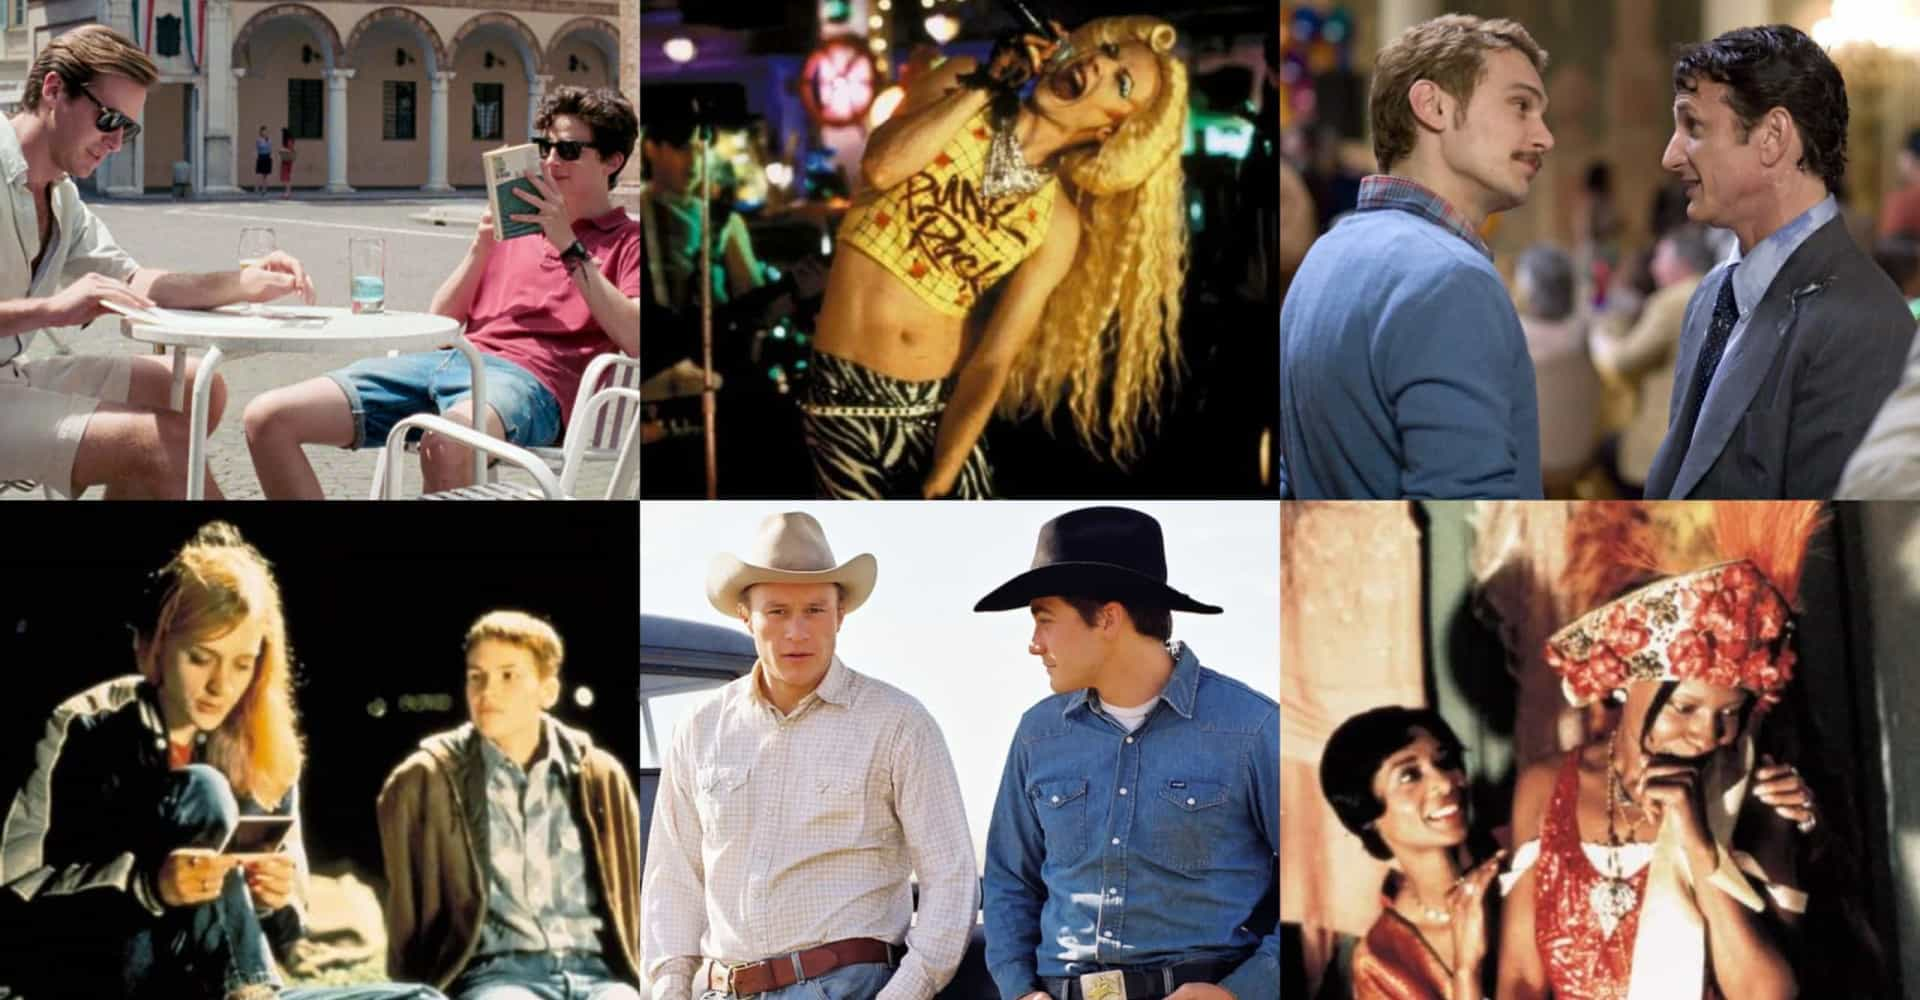 30 of the best LGBT films of all time